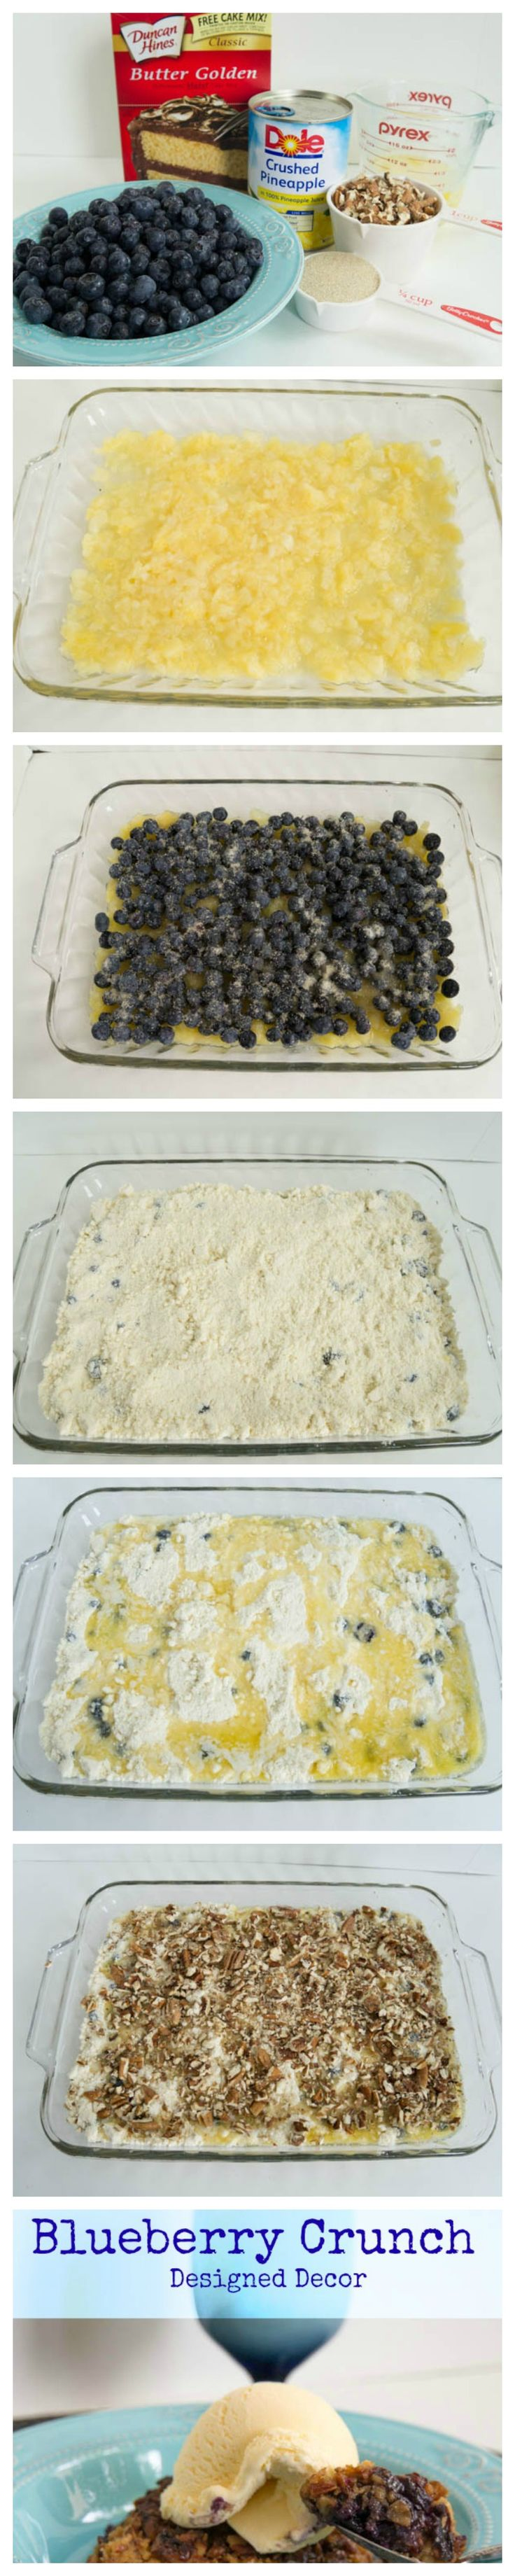 Easy Step by step blueberry crunch recipe! This is a simple layer recipe that is easy to make and taste great. www.designeddecor.com